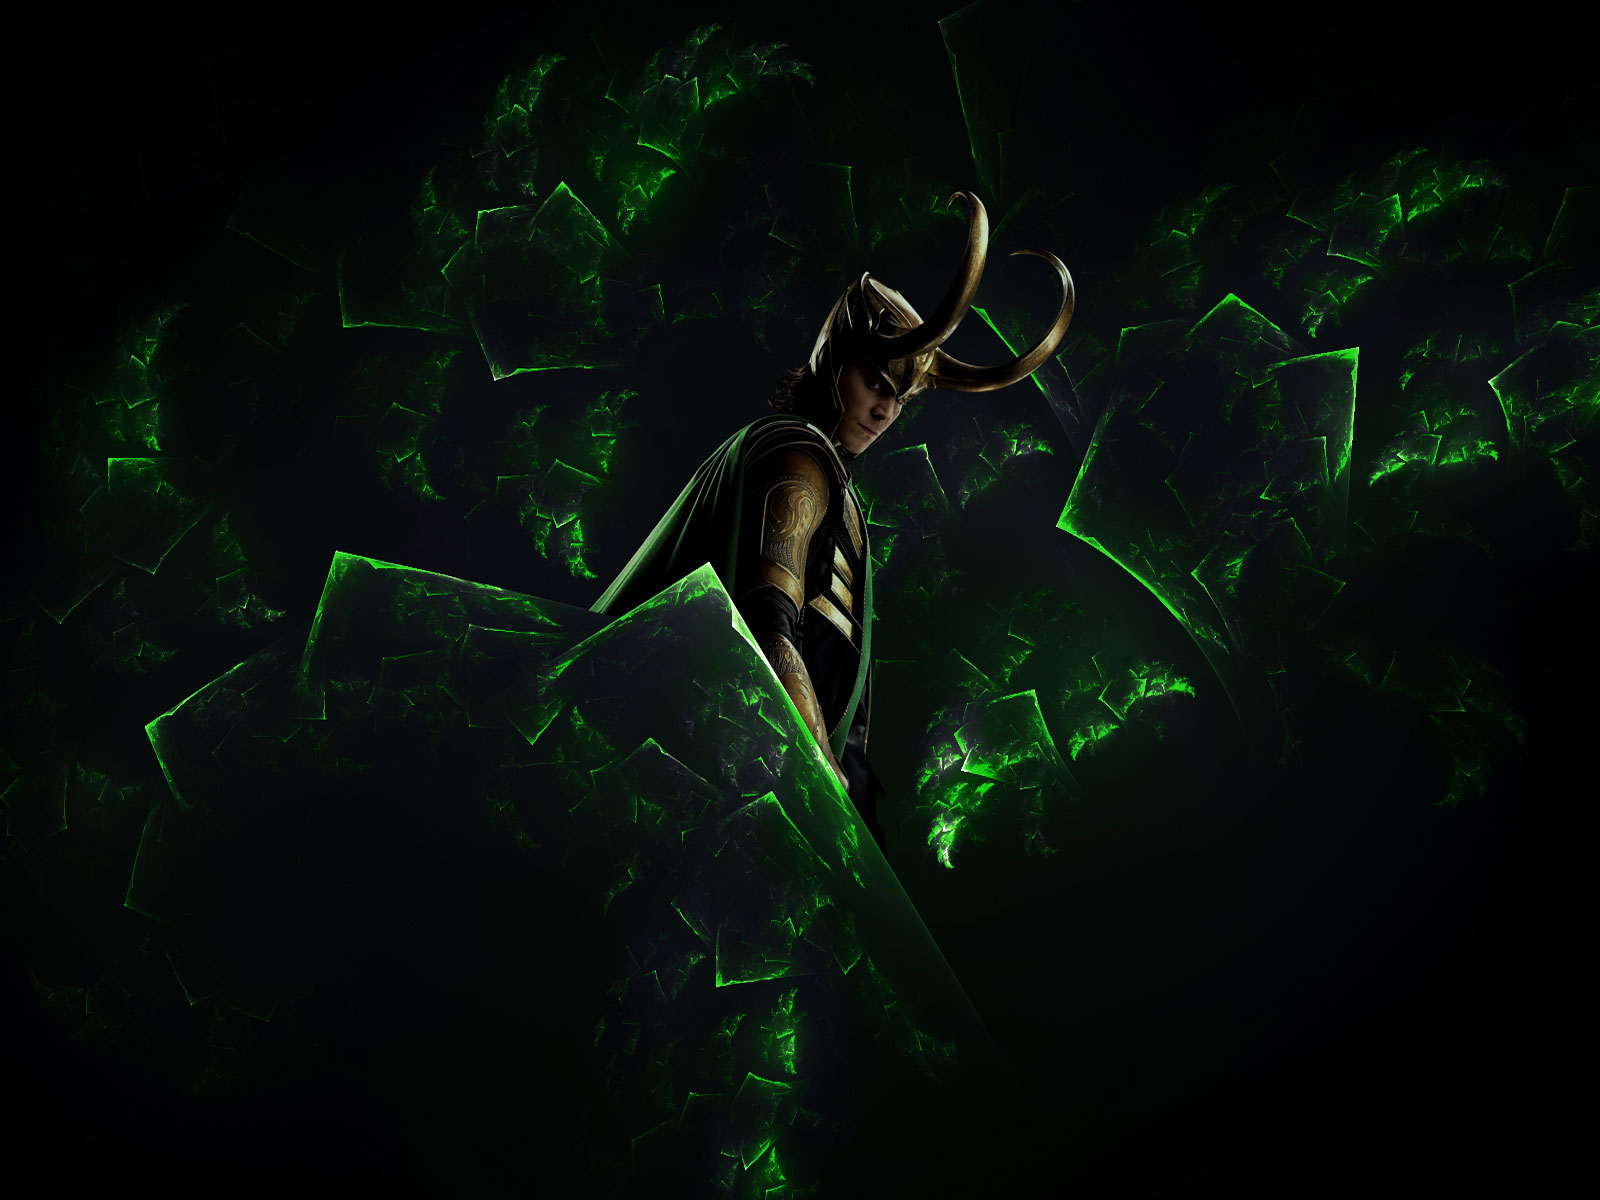 loki background for tigger - photo #40